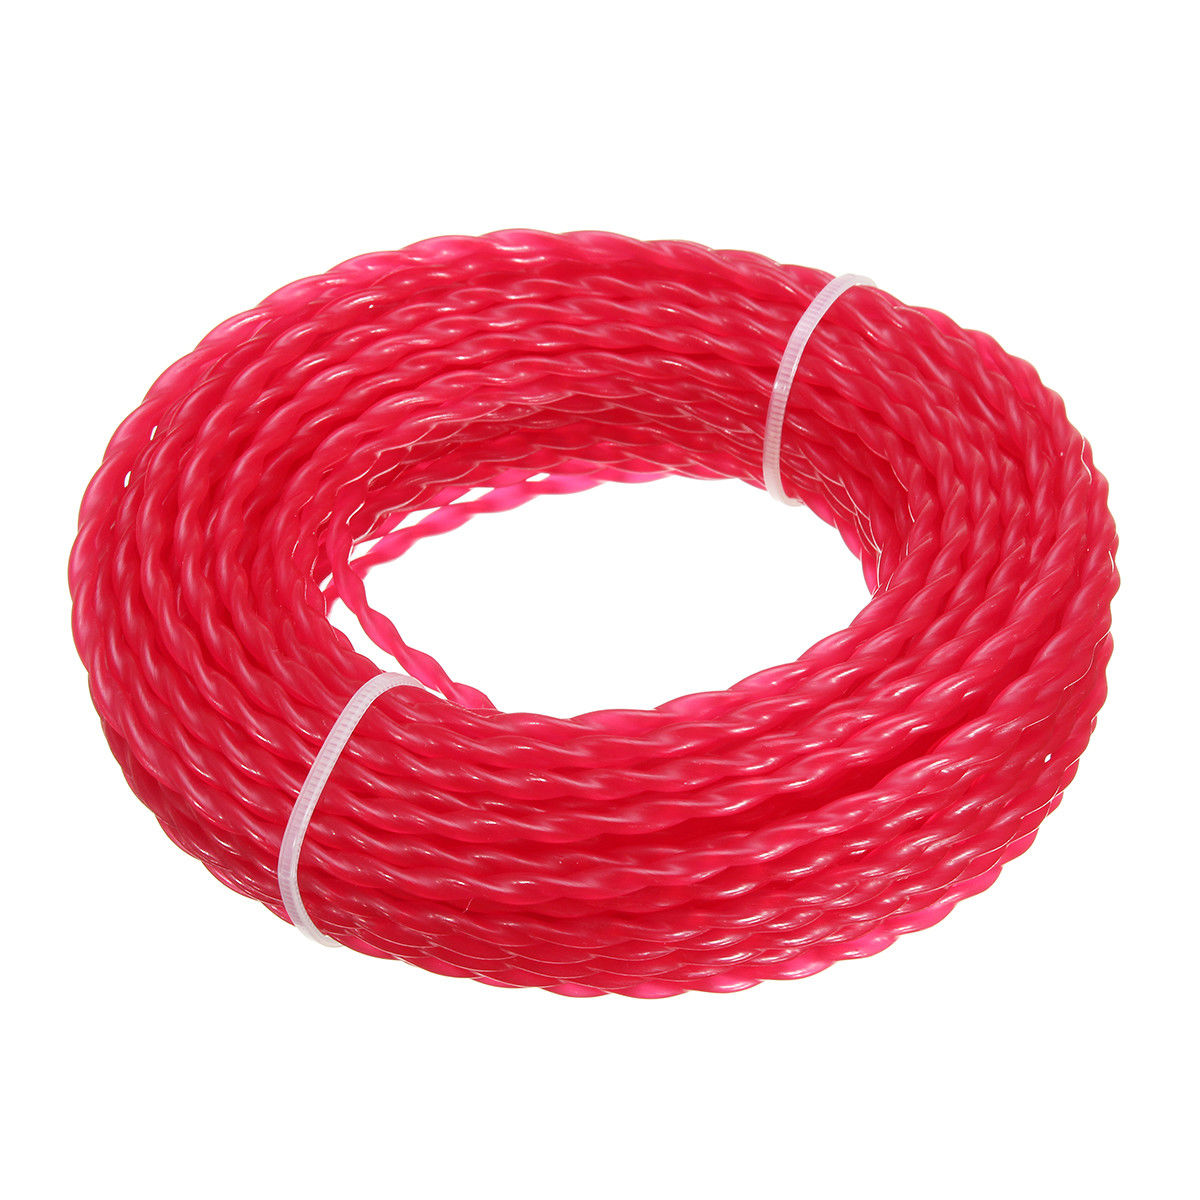 15m X 3mm Strimmer Line Brushcutter Grass Trimmer Nylon Cord Wire Round String Trimmer Line Replacement